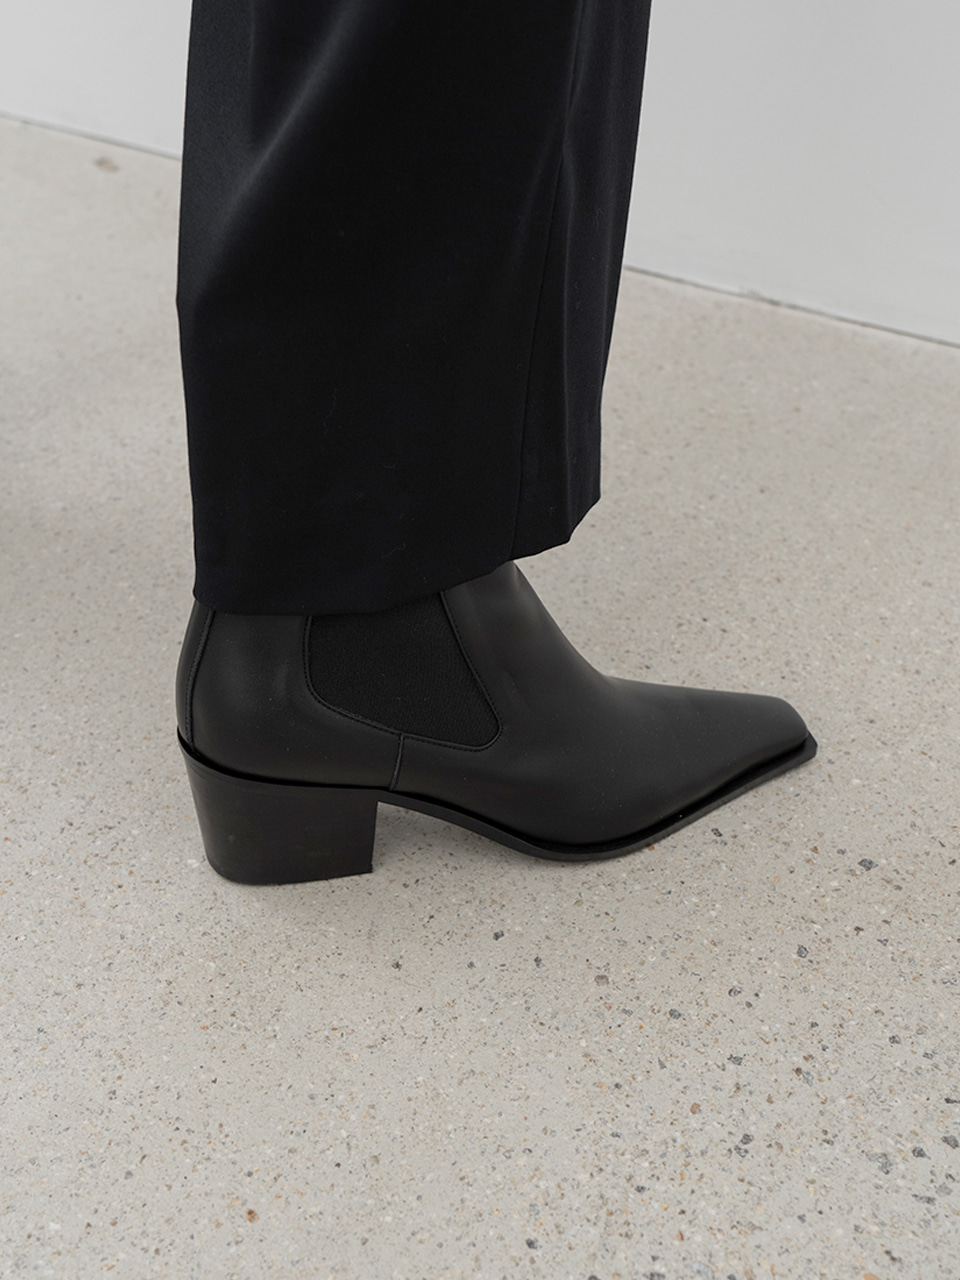 WESTERN CHELSEA BOOTS[C0F10 BK]